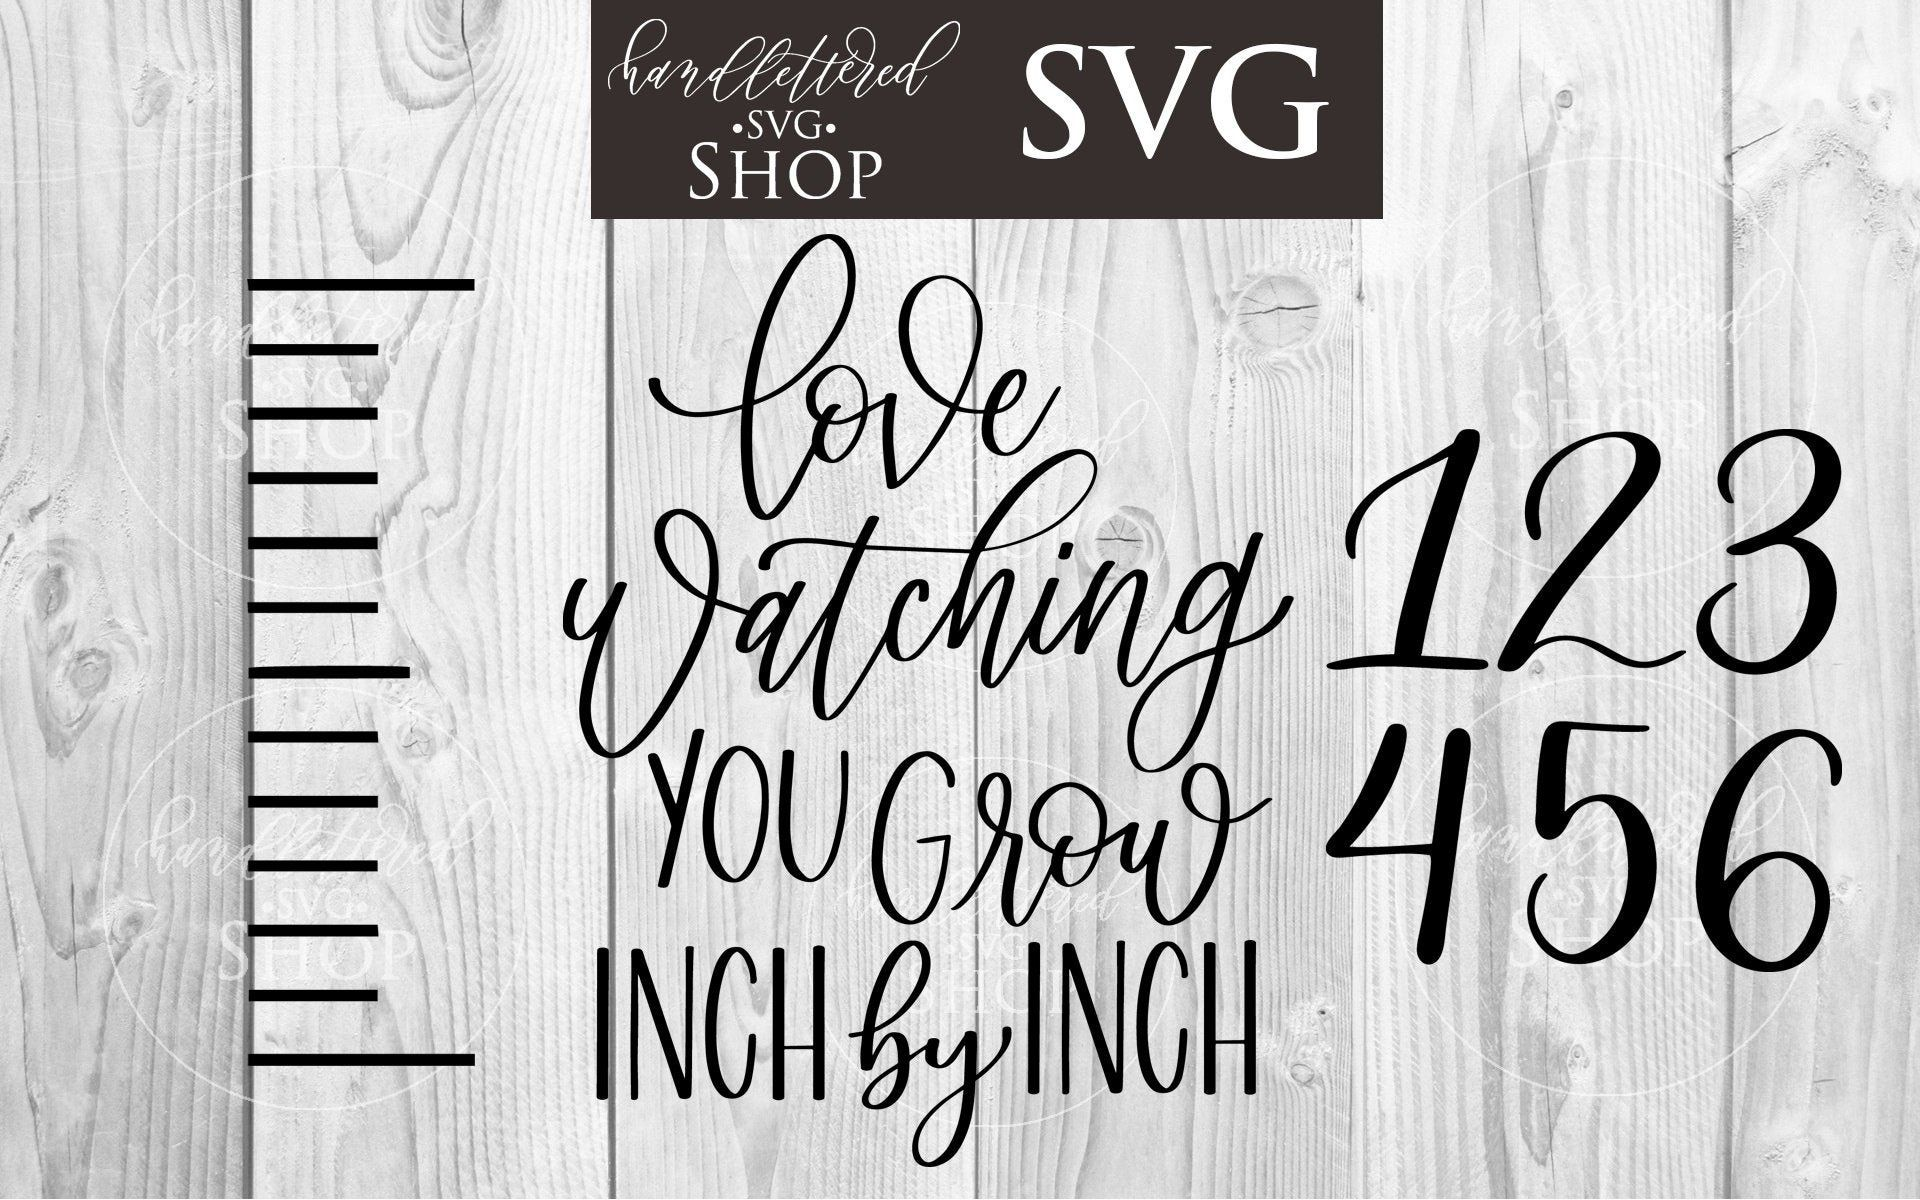 Growth Chart SVG Love Watching Your Grow Inch by Inch